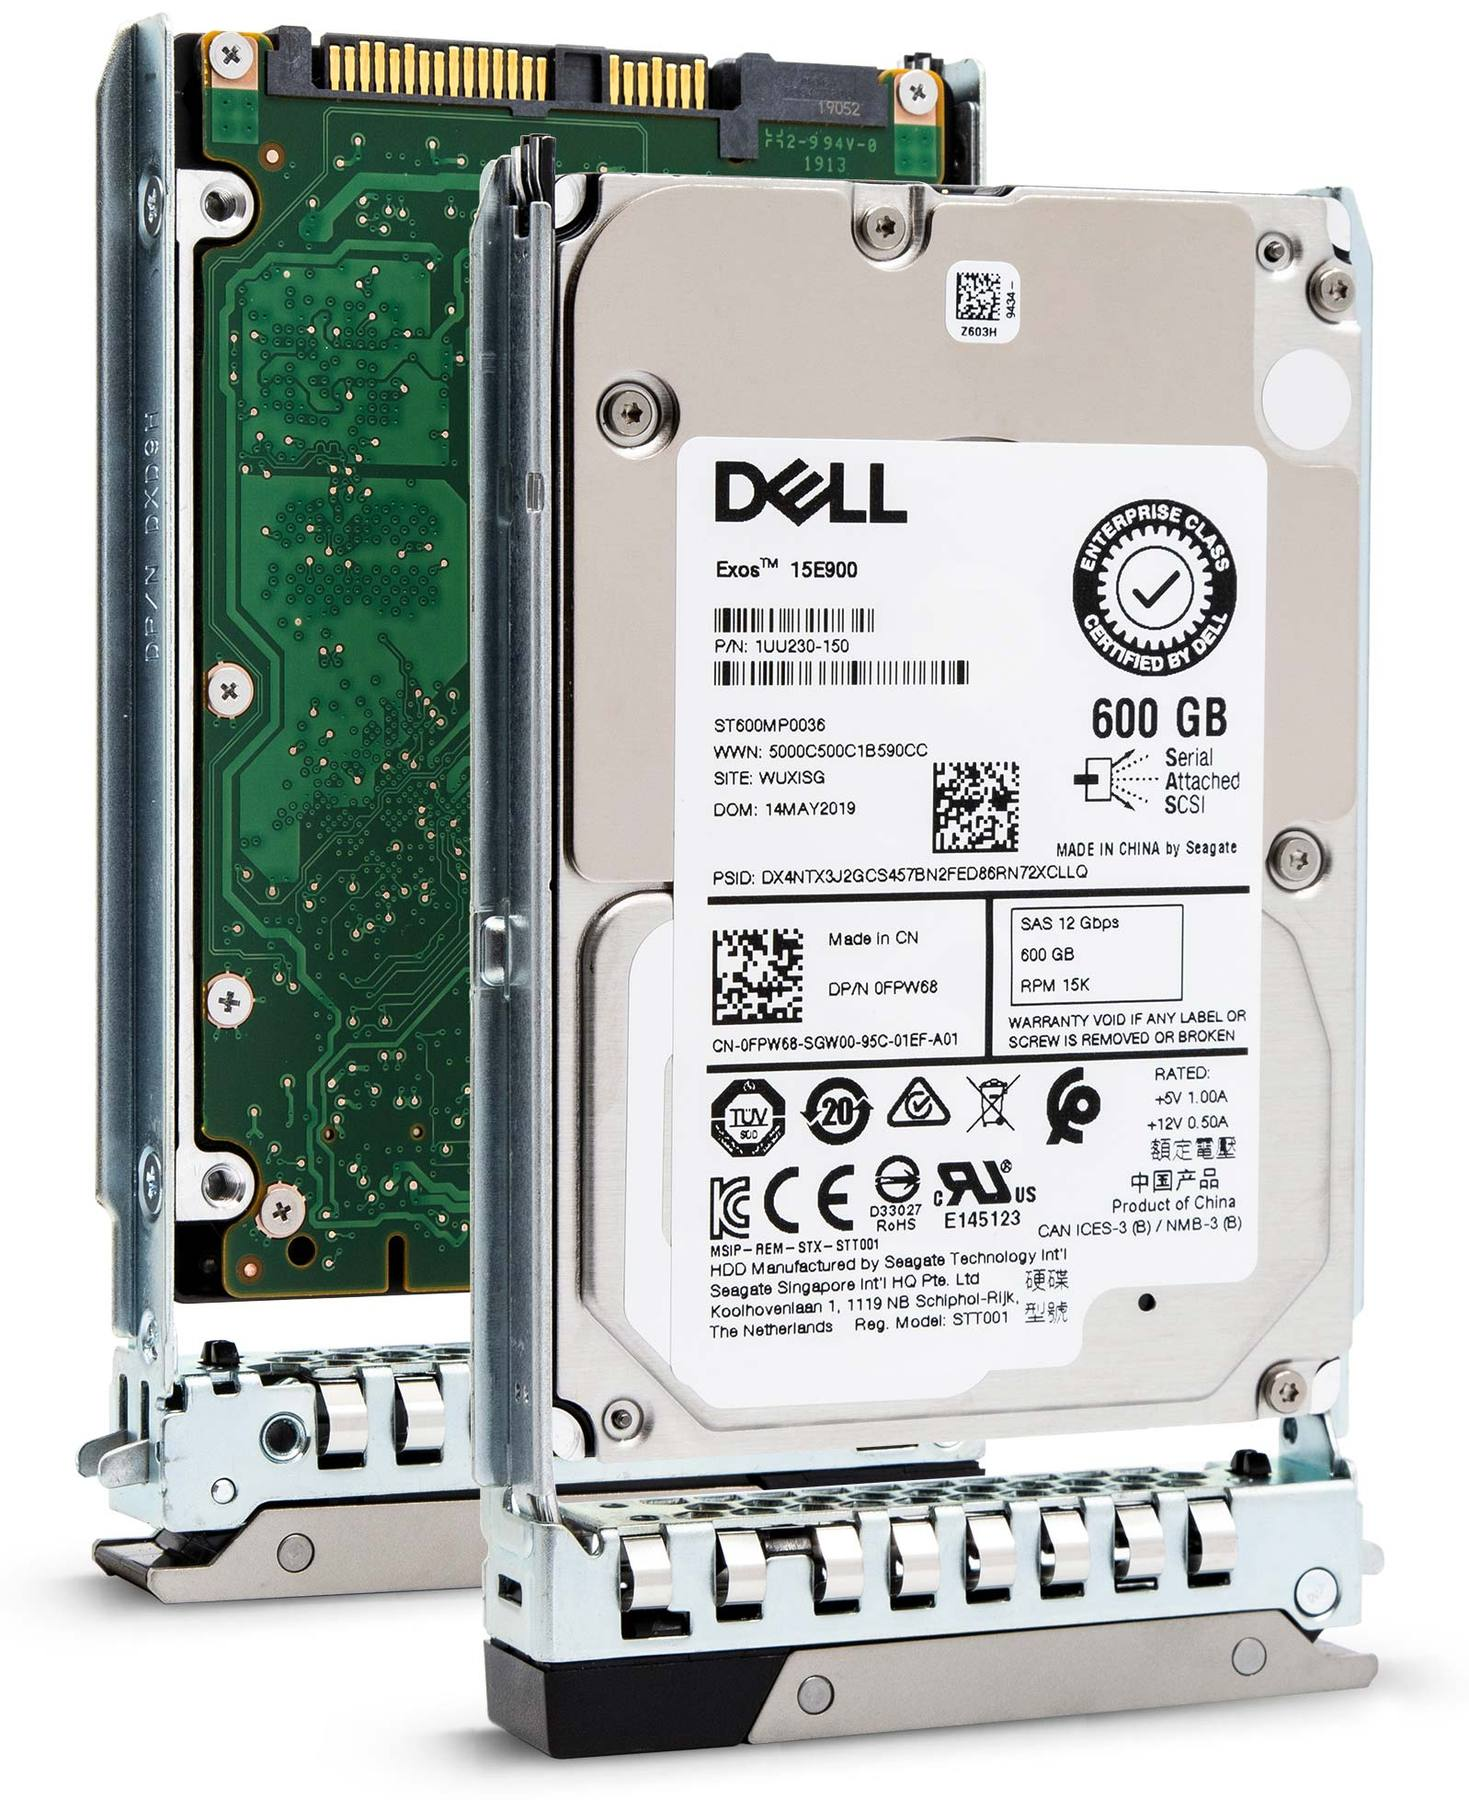 "Dell G14 400-ATIN 600GB 15K RPM SAS 12Gb/s 512n 2.5"" Hard Drive"